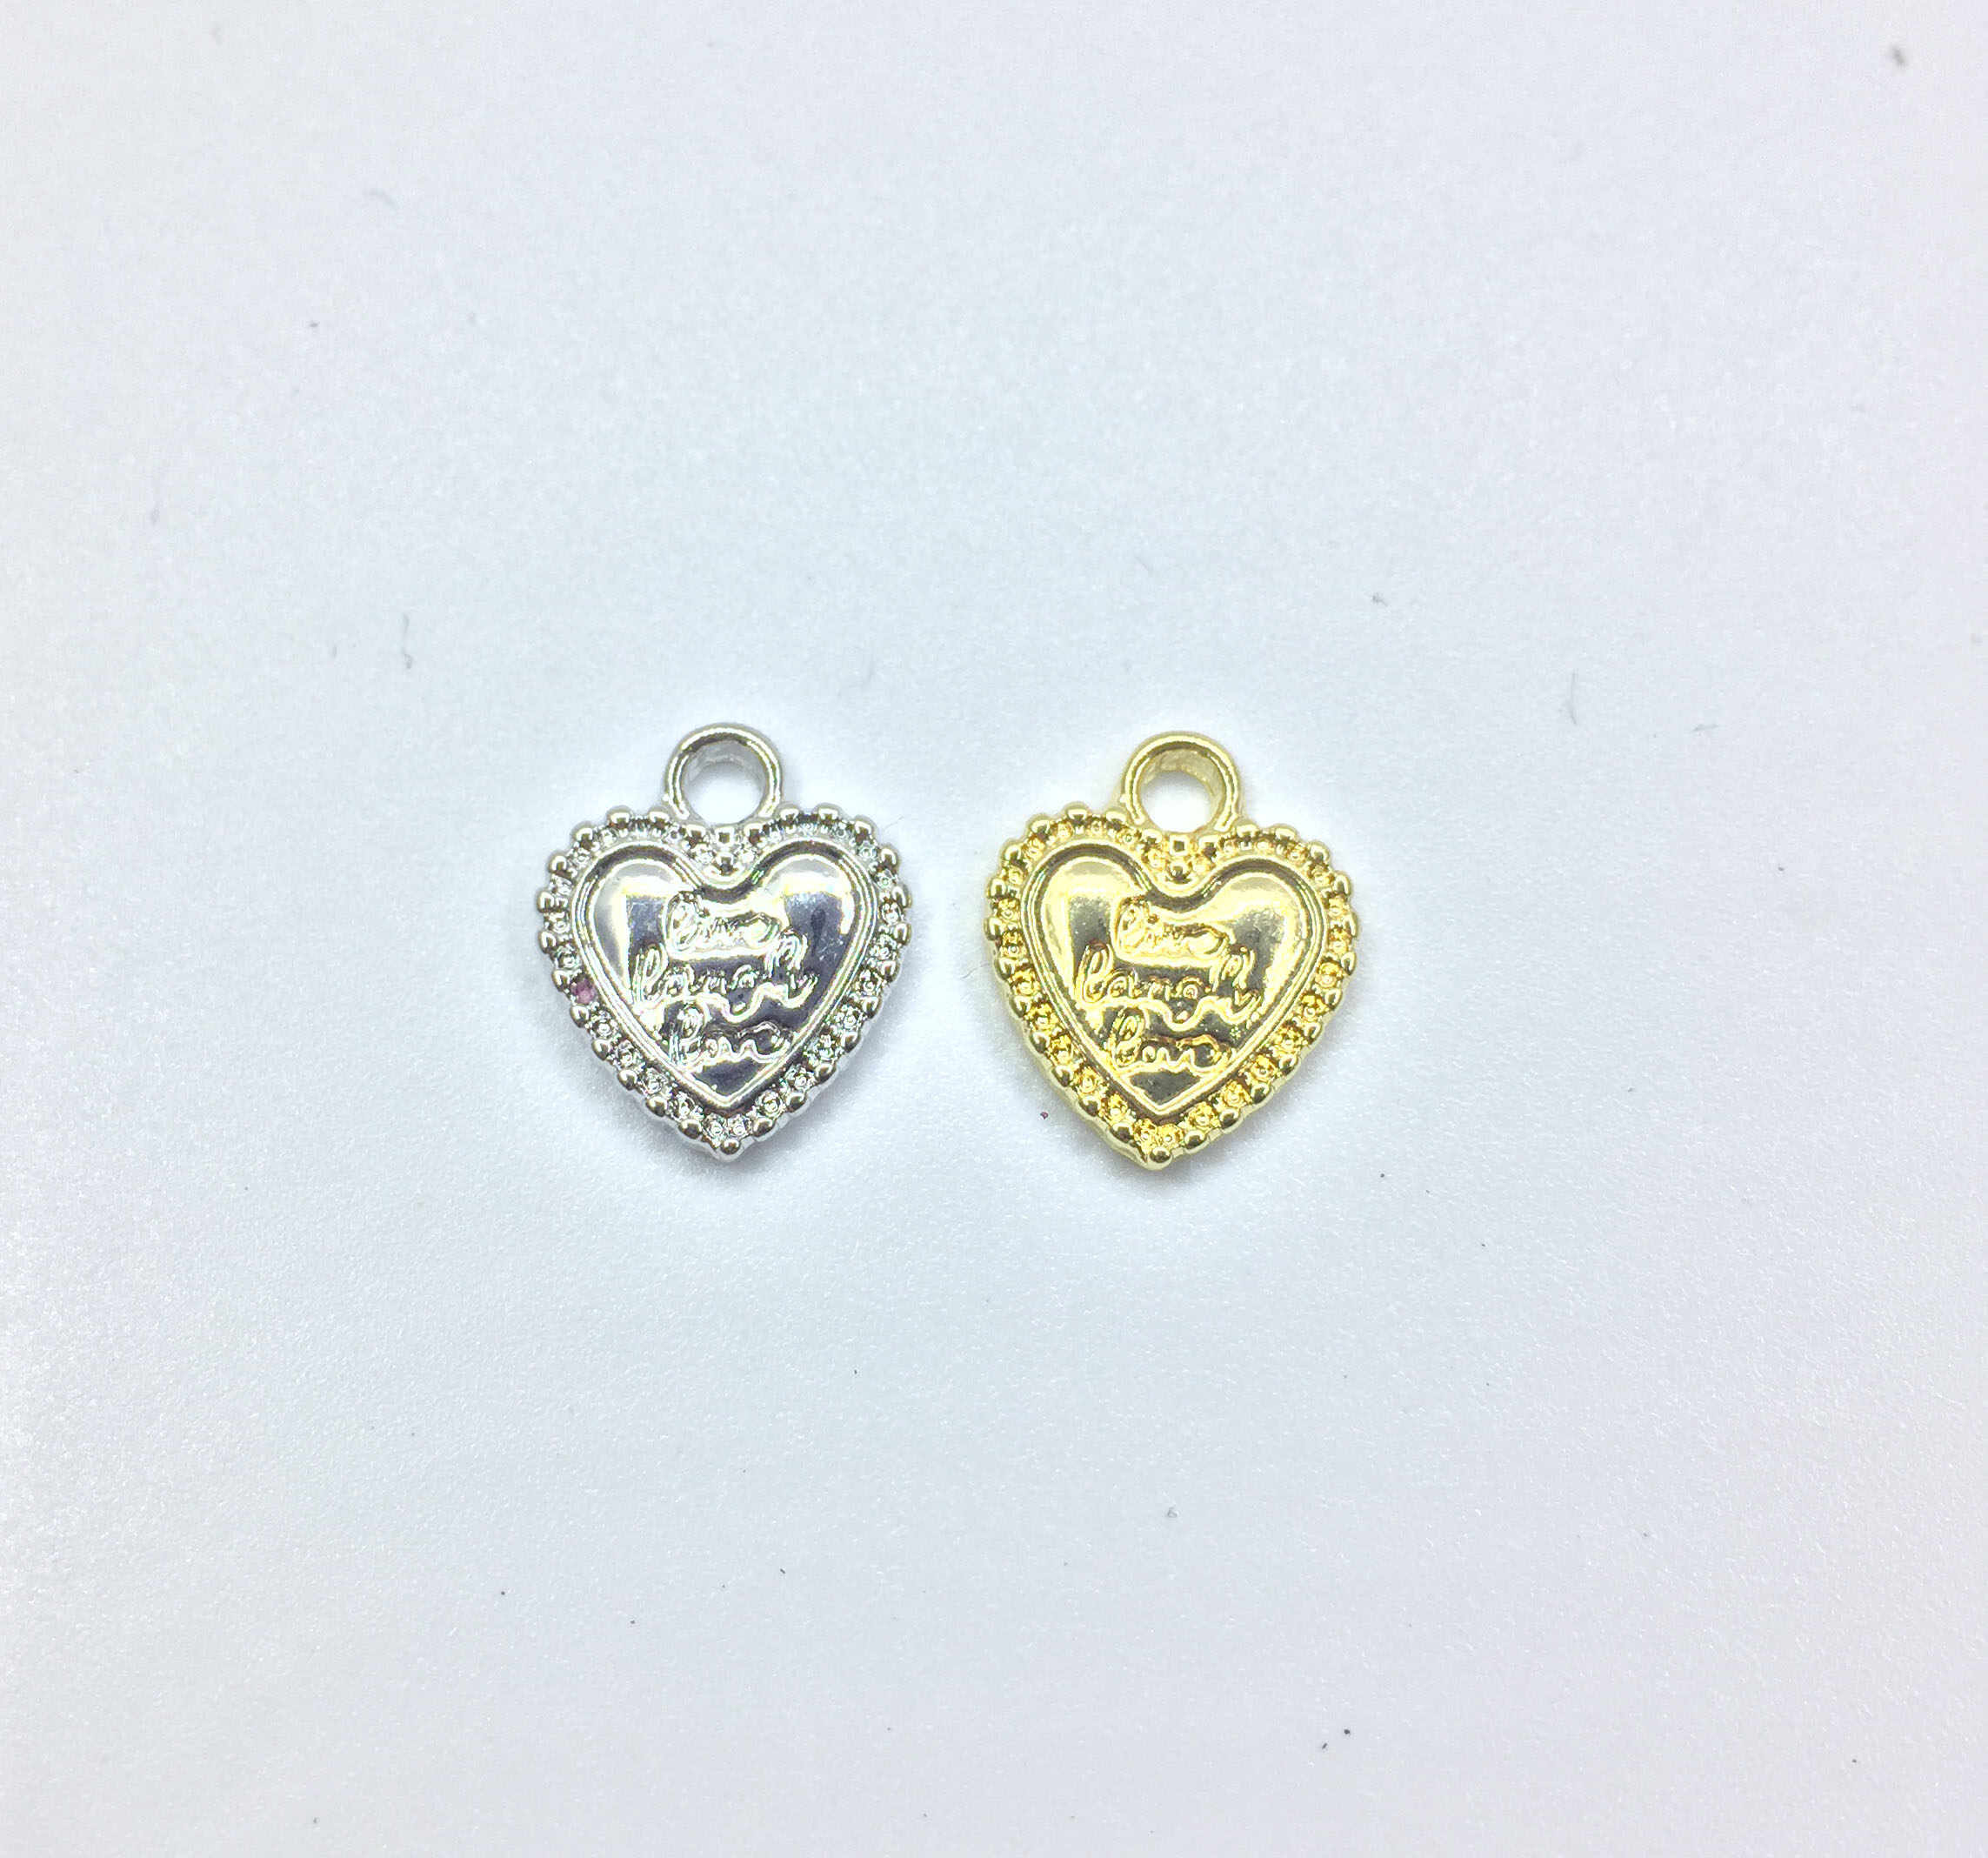 Eruifa 20pcs 12mm Nice Heart with Letters Coin Zinc Alloy necklace,earring bracelet jewelry DIY handmade 2 colors